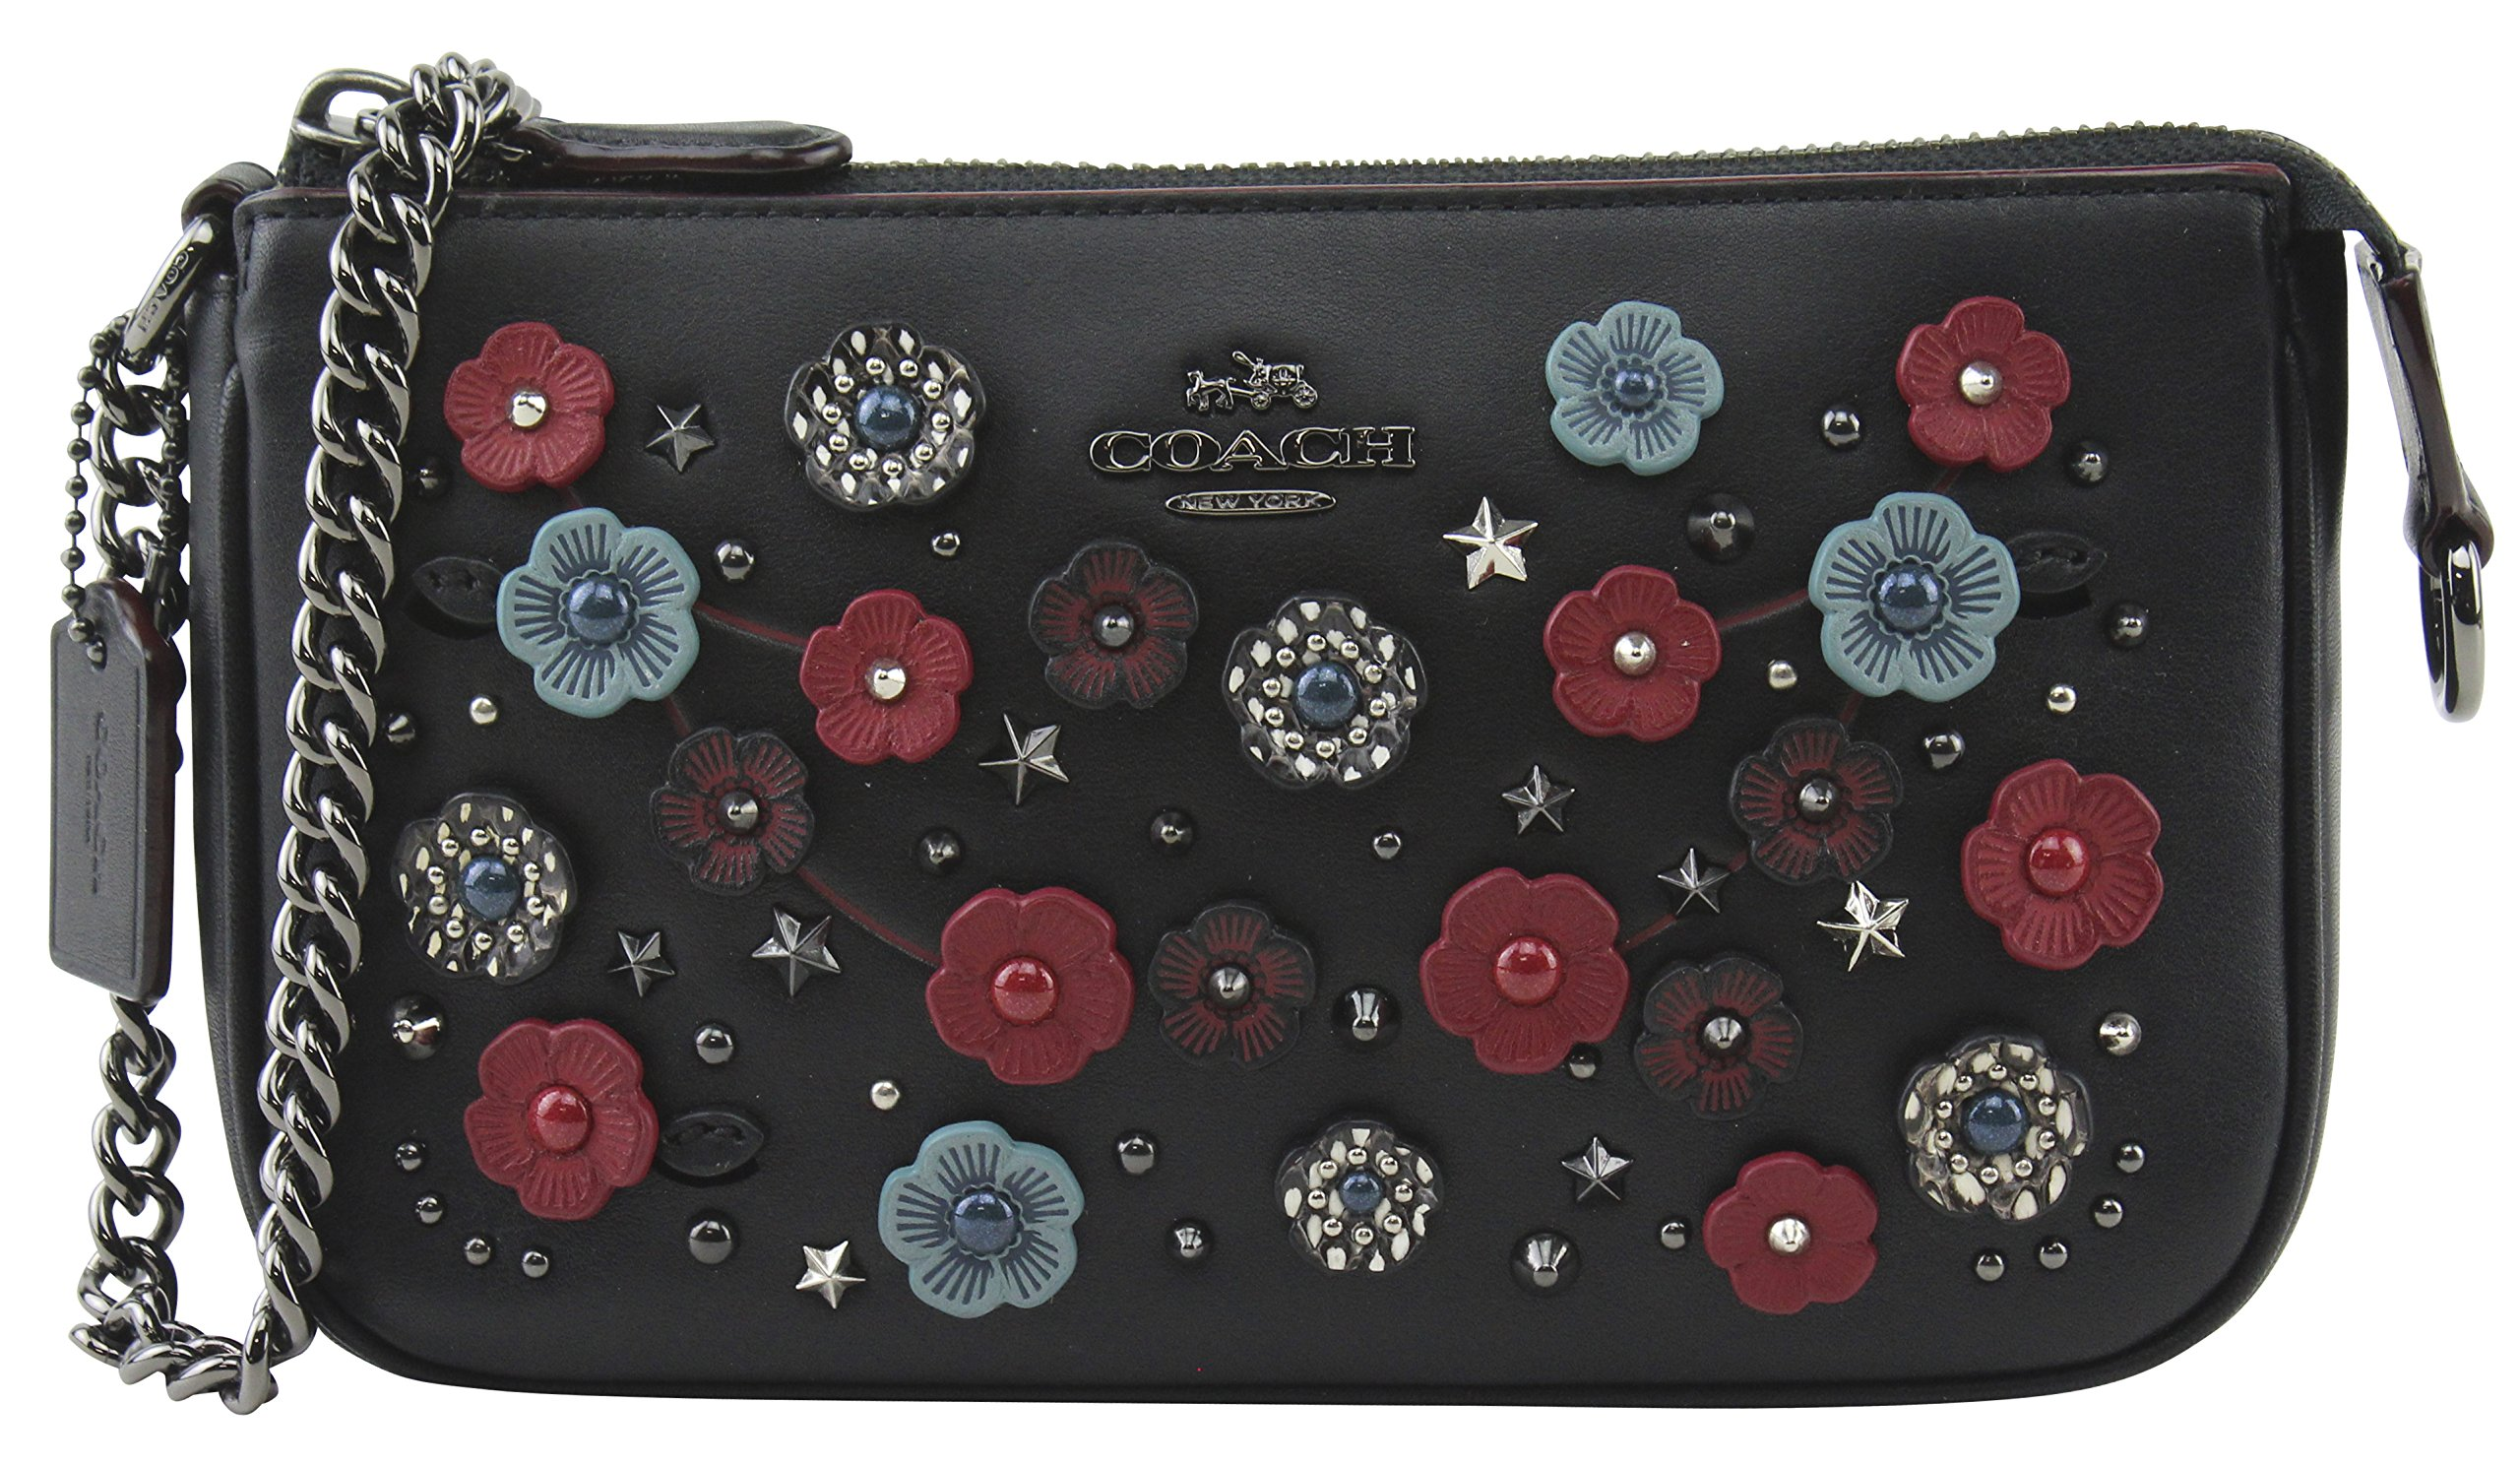 Coach Women's Nolita Black Wristlet 19 with Tea Rose and Snakeskin Detail, Style F59772